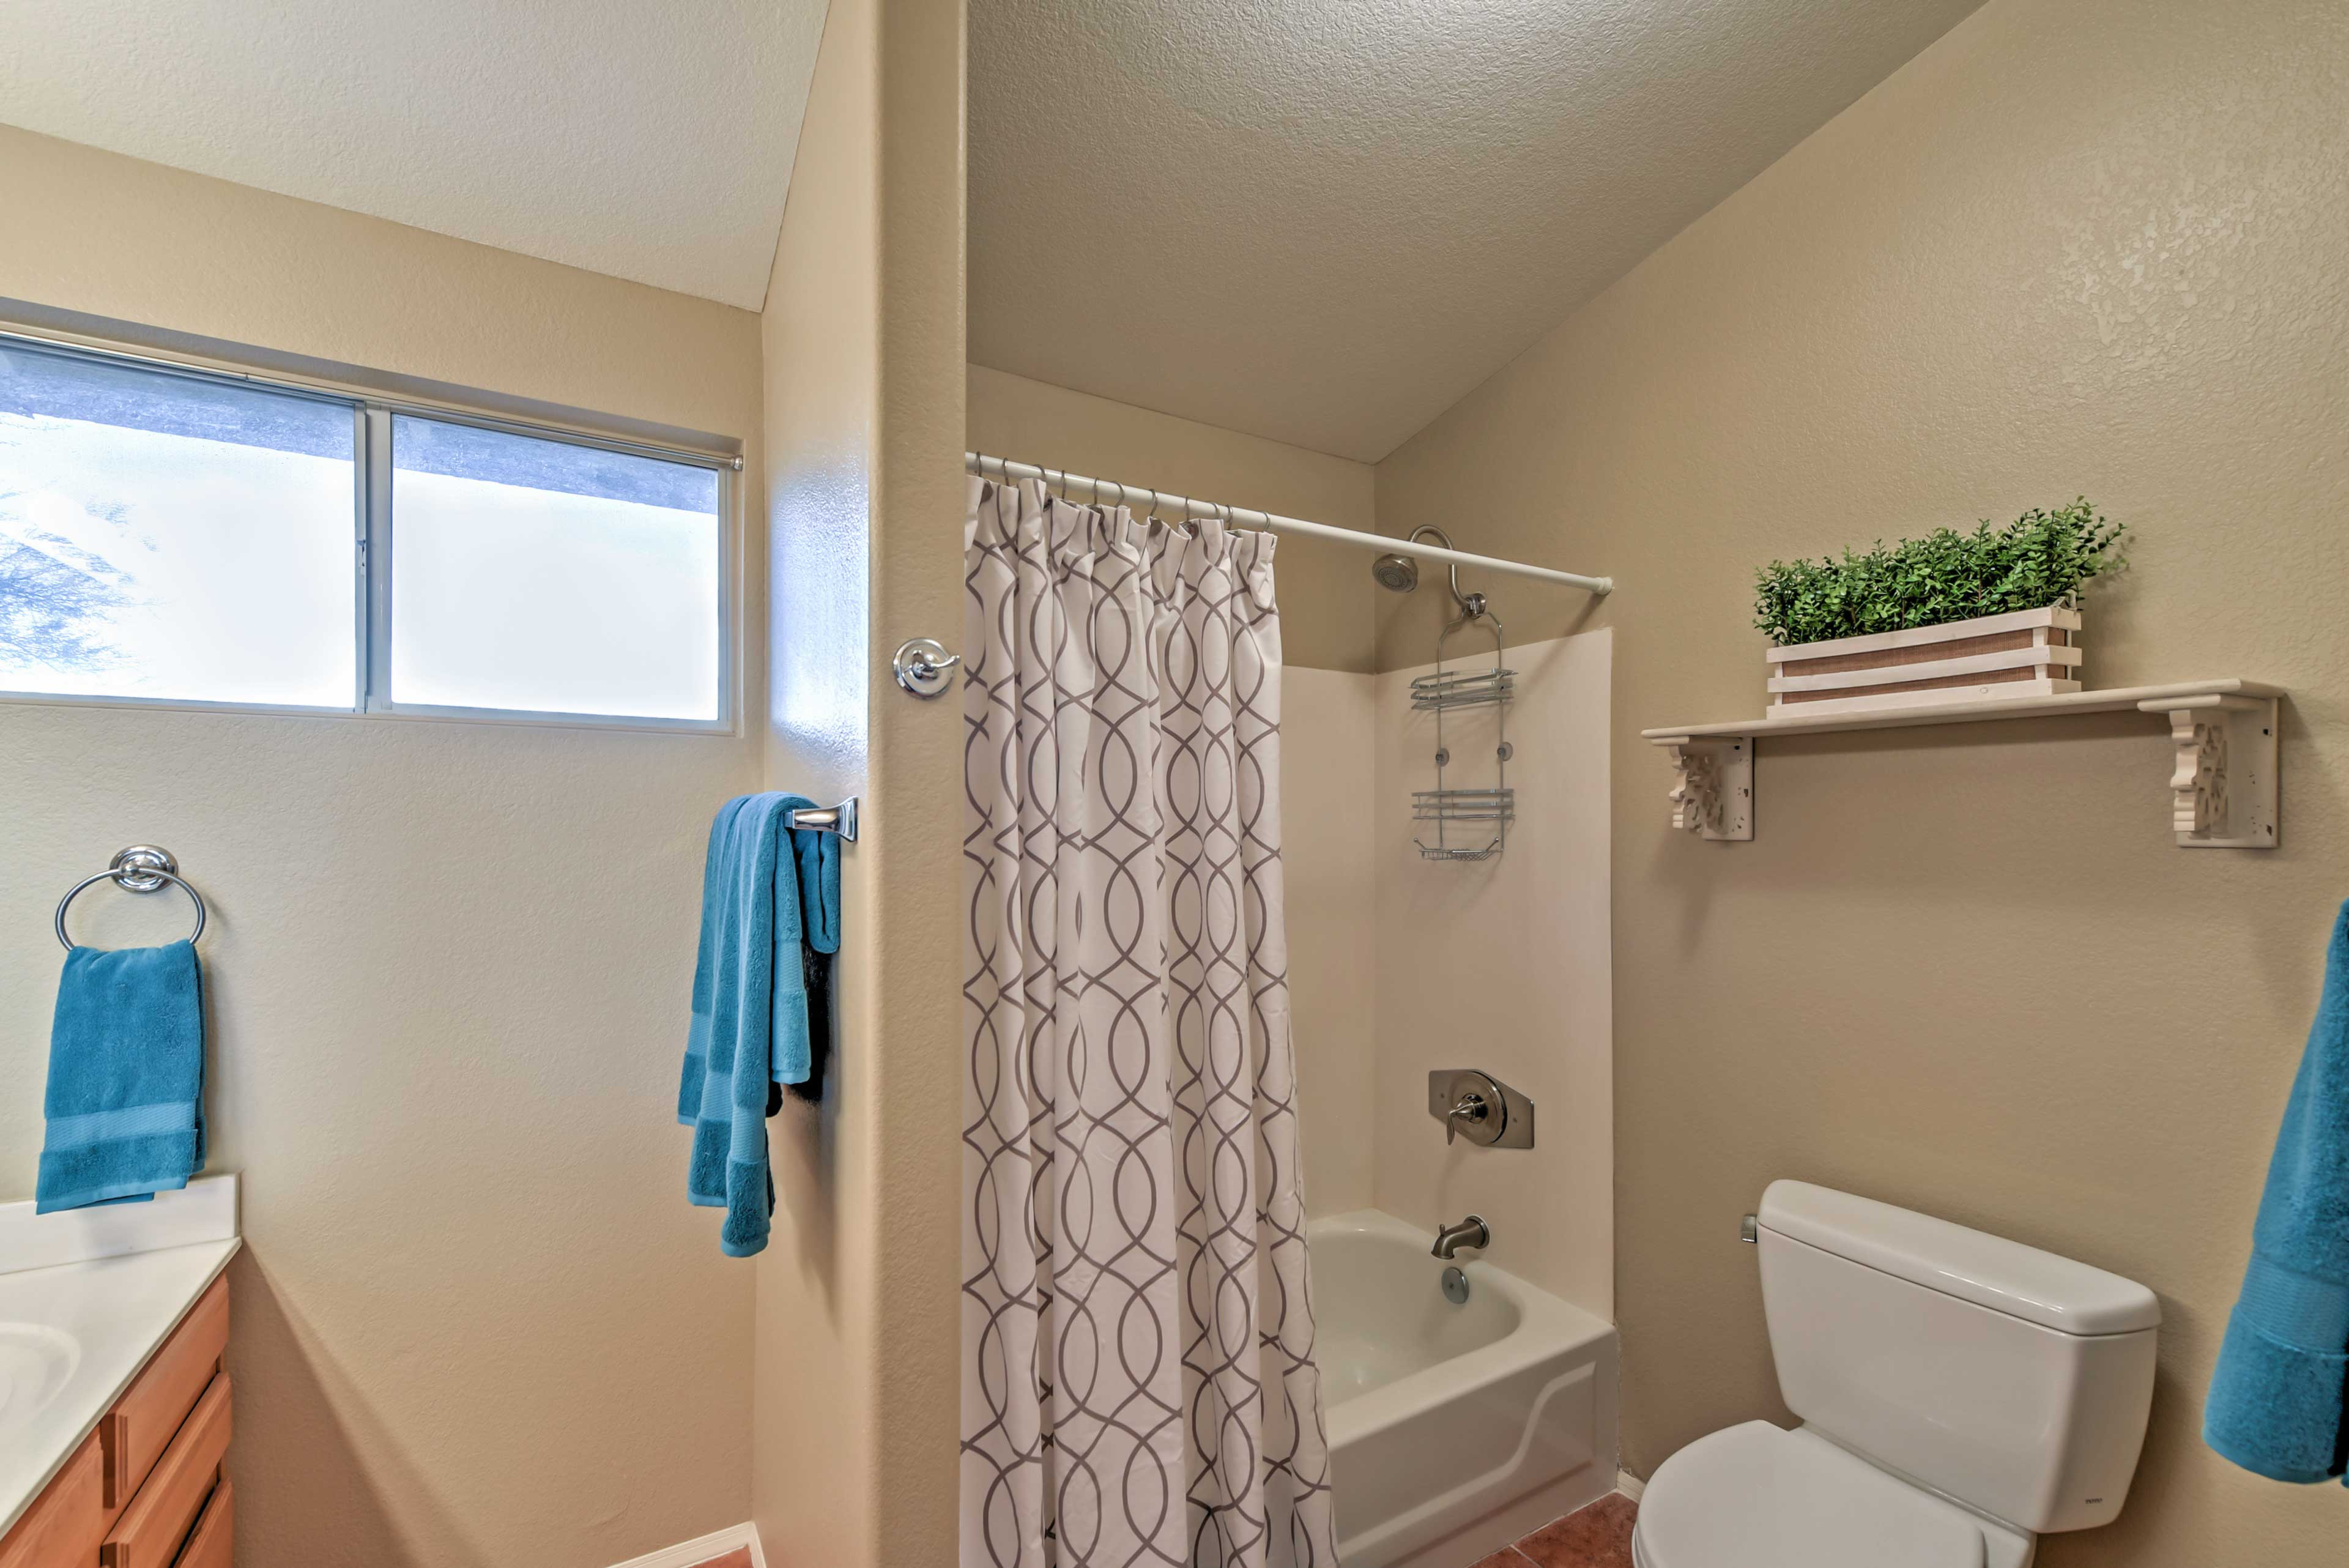 Linens and towels are provided for your stay.